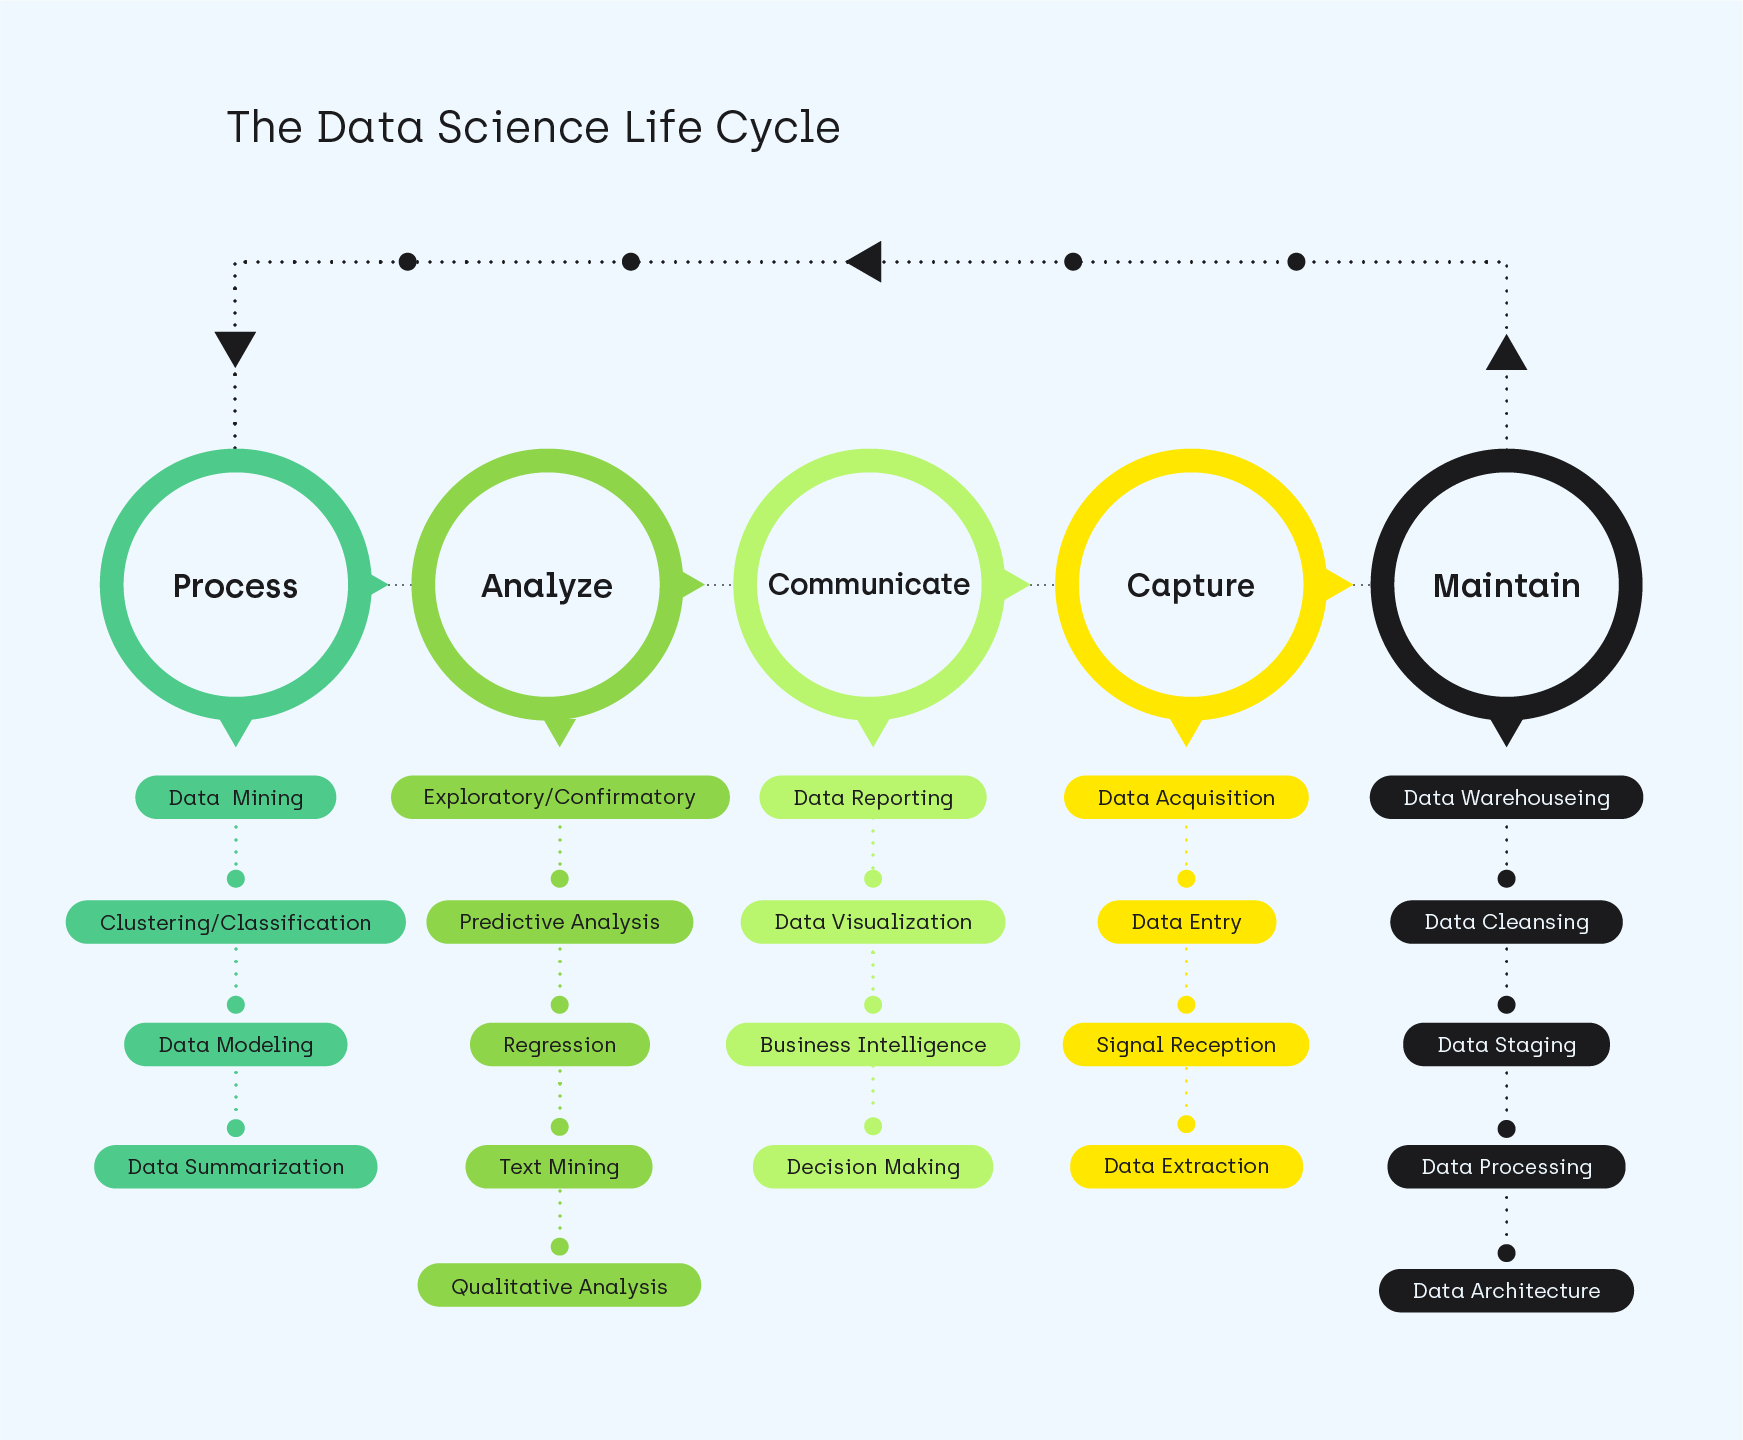 The Data Science lifecycle